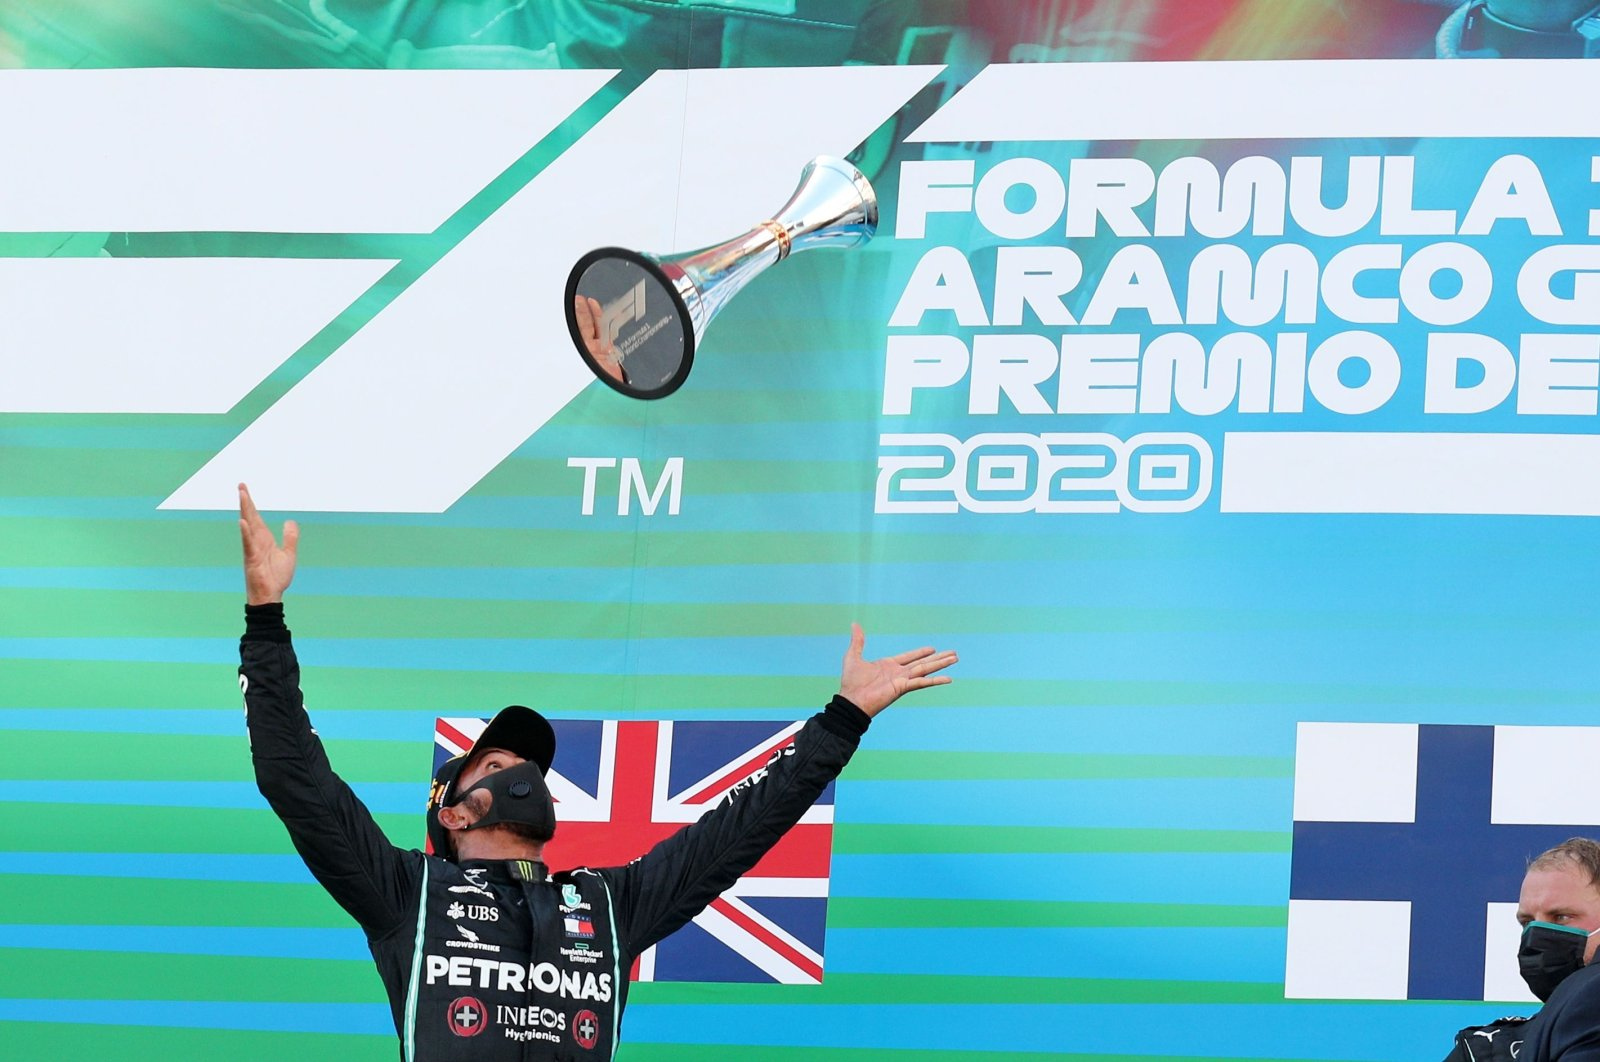 Mercedes driver Lewis Hamilton celebrates on the podium after winning the Formula 1 Spanish Grand Prix in Montmelo, Spain, Aug. 16, 2020. (AFP Photo)